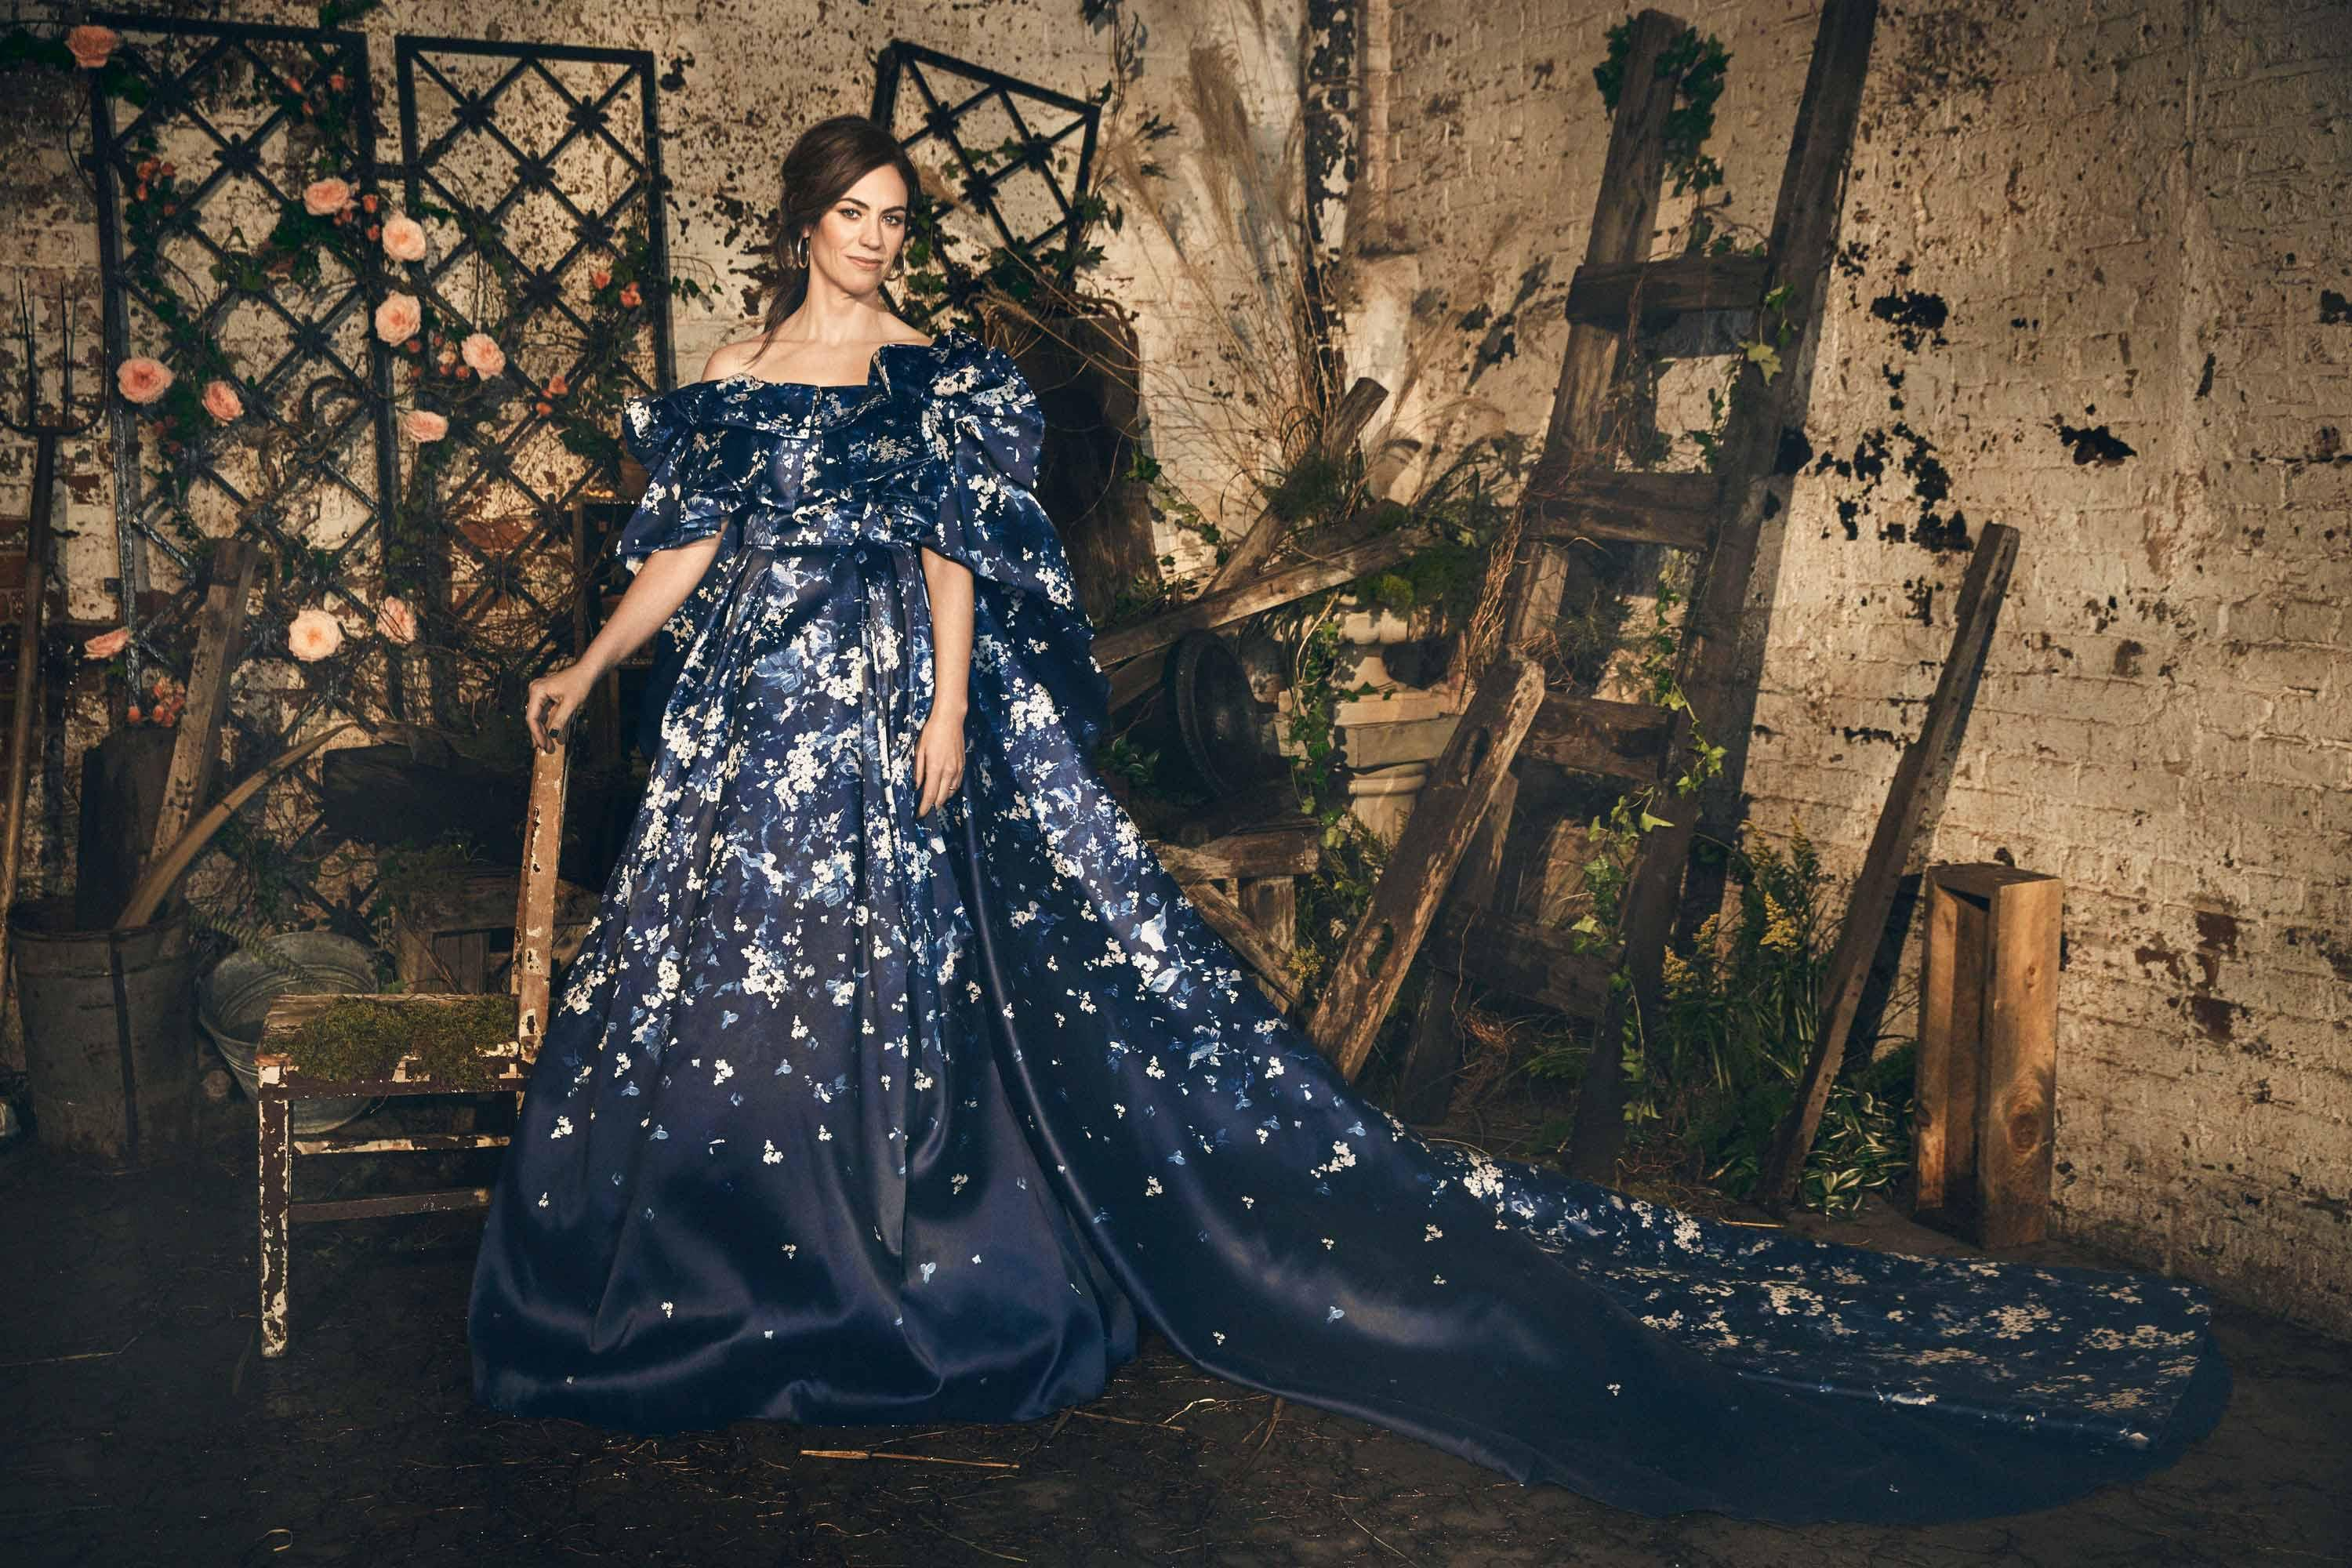 Maggie Siff in a dark blue floral gown with a flowing train